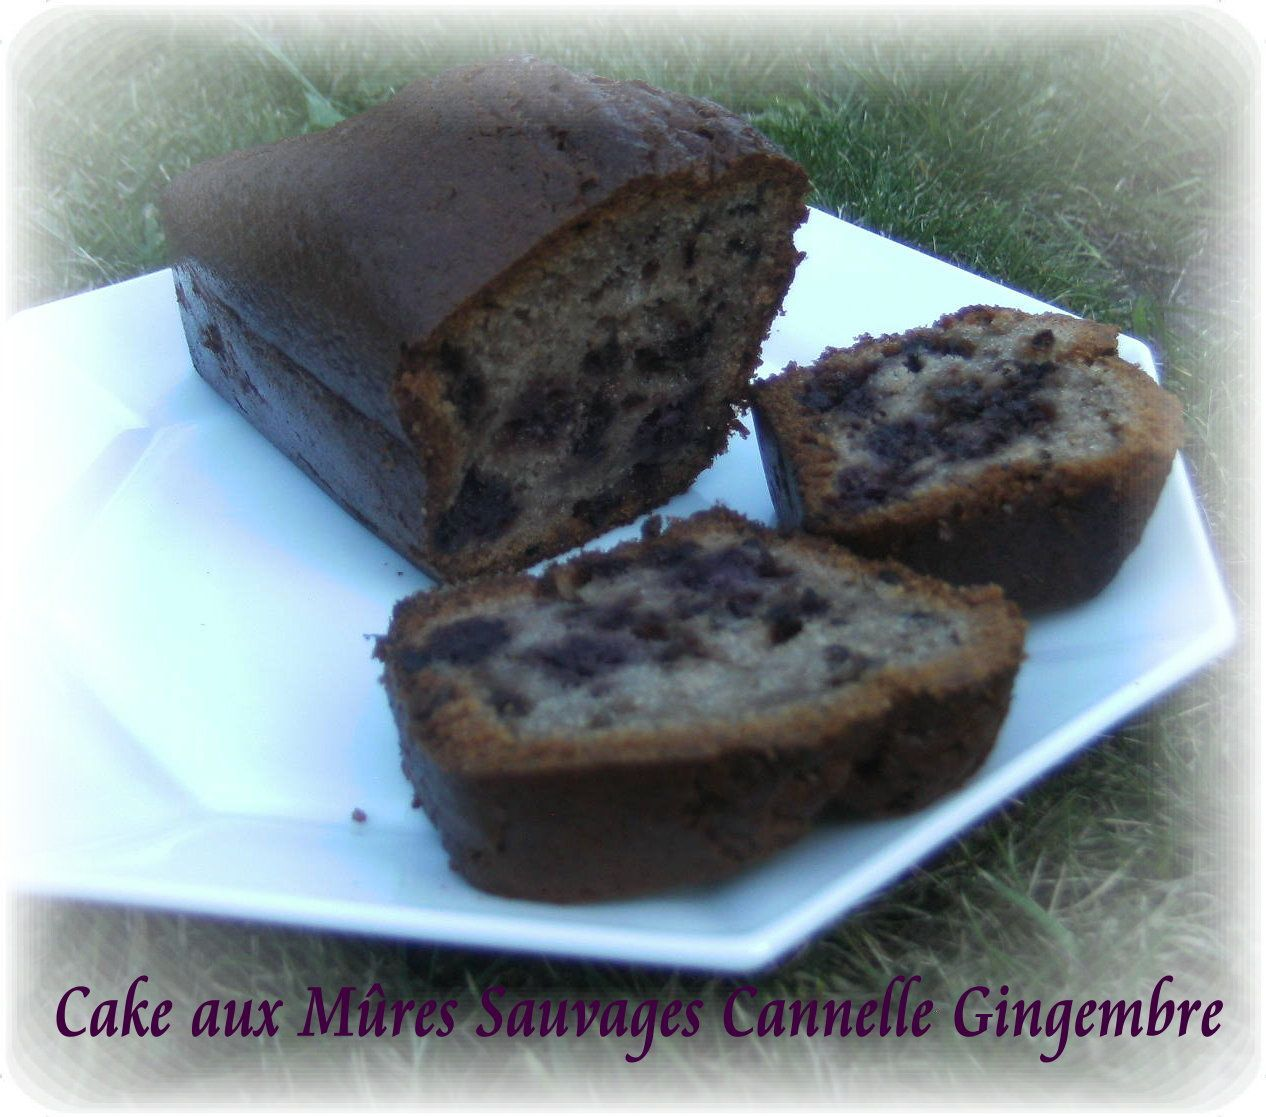 cake aux mures sauvages cannelle gingembre mes petites recettes preferees